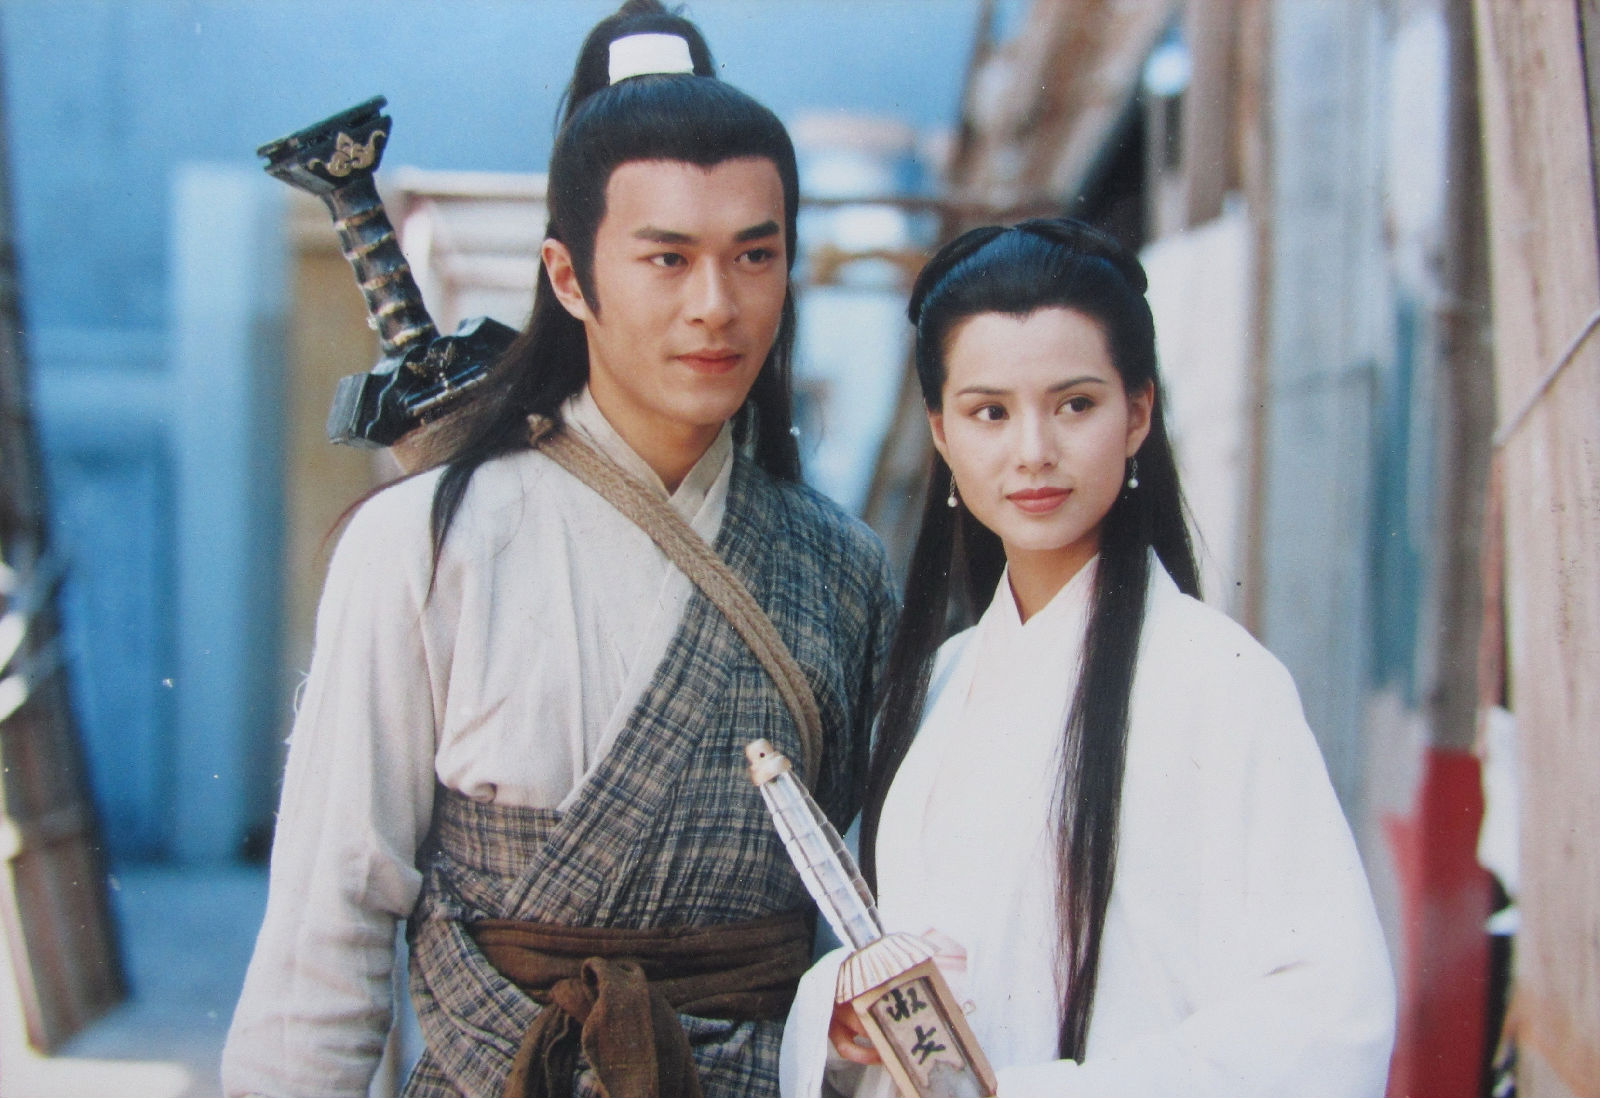 A Fantasy World of Chinese Historical Dramas - One in a